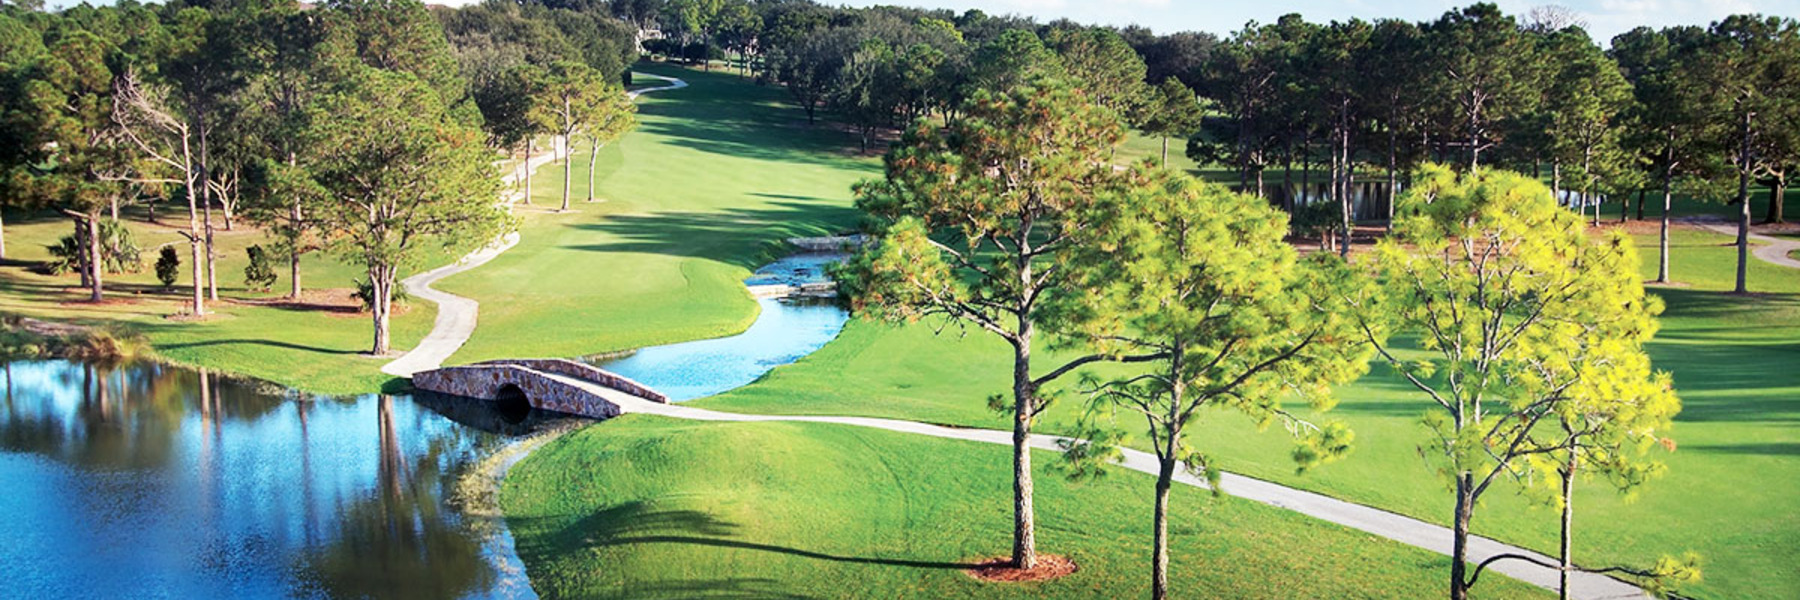 Golf Vacation Package - Historic Mission Inn Resort Unlimited Golf and Resort Credit for $217 per day!